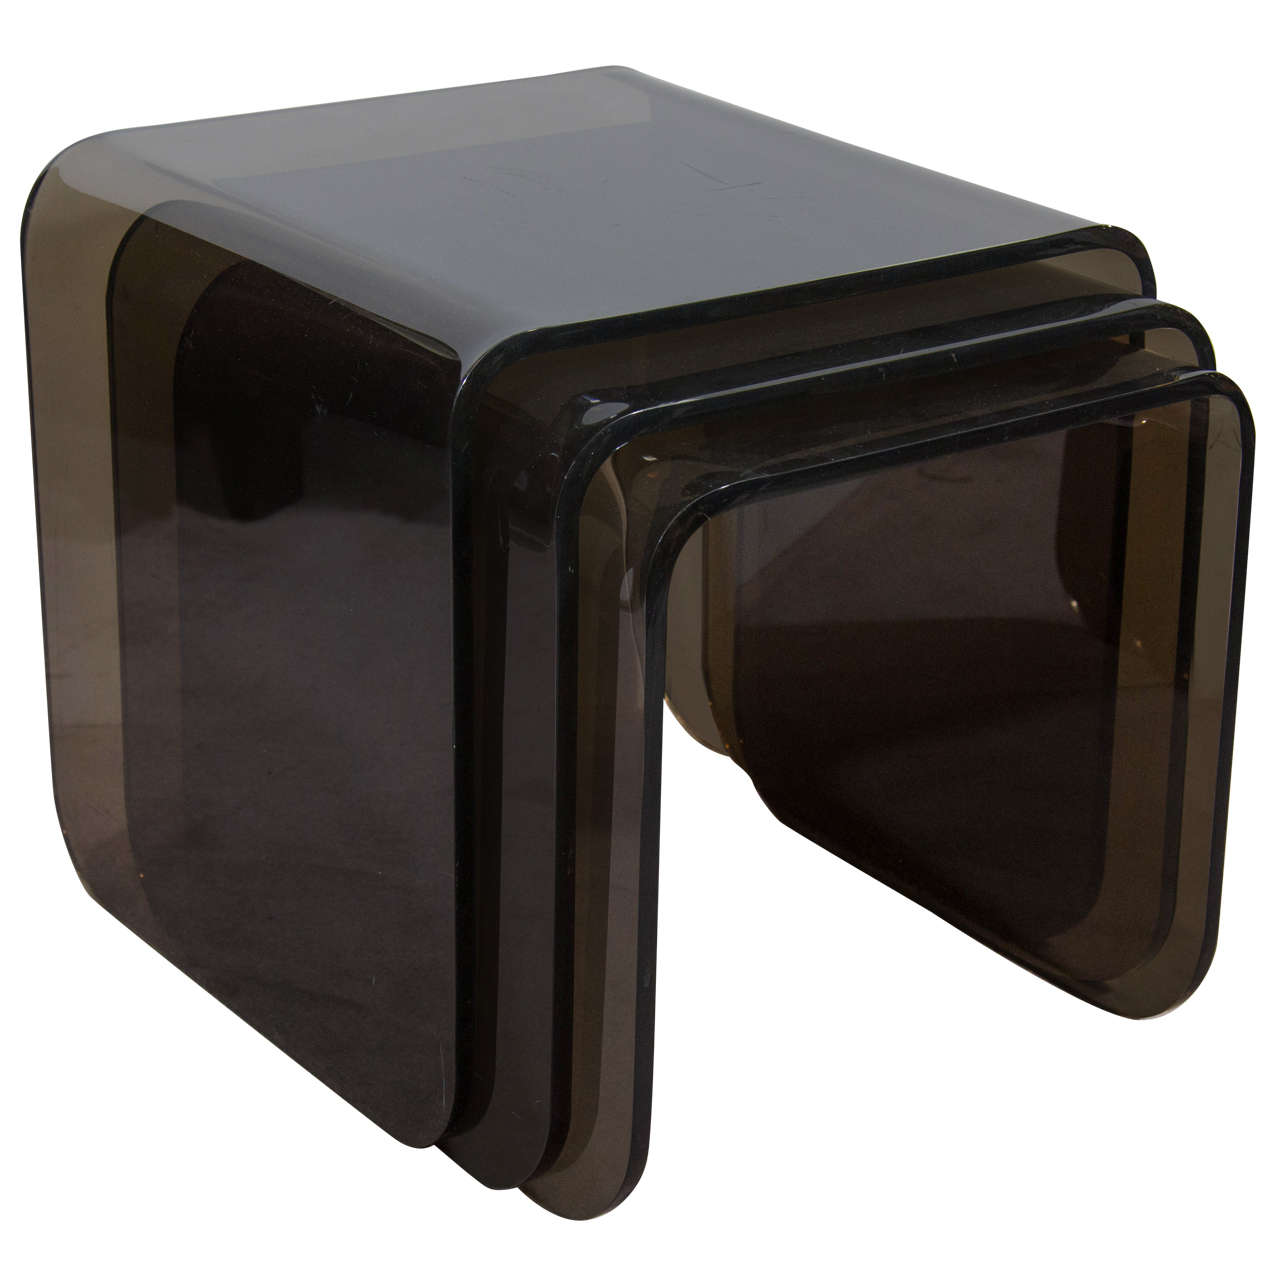 Spectacular trio of modern waterfall design quartz lucite nesting tables at 1stdibs - Modern architectural trio ...